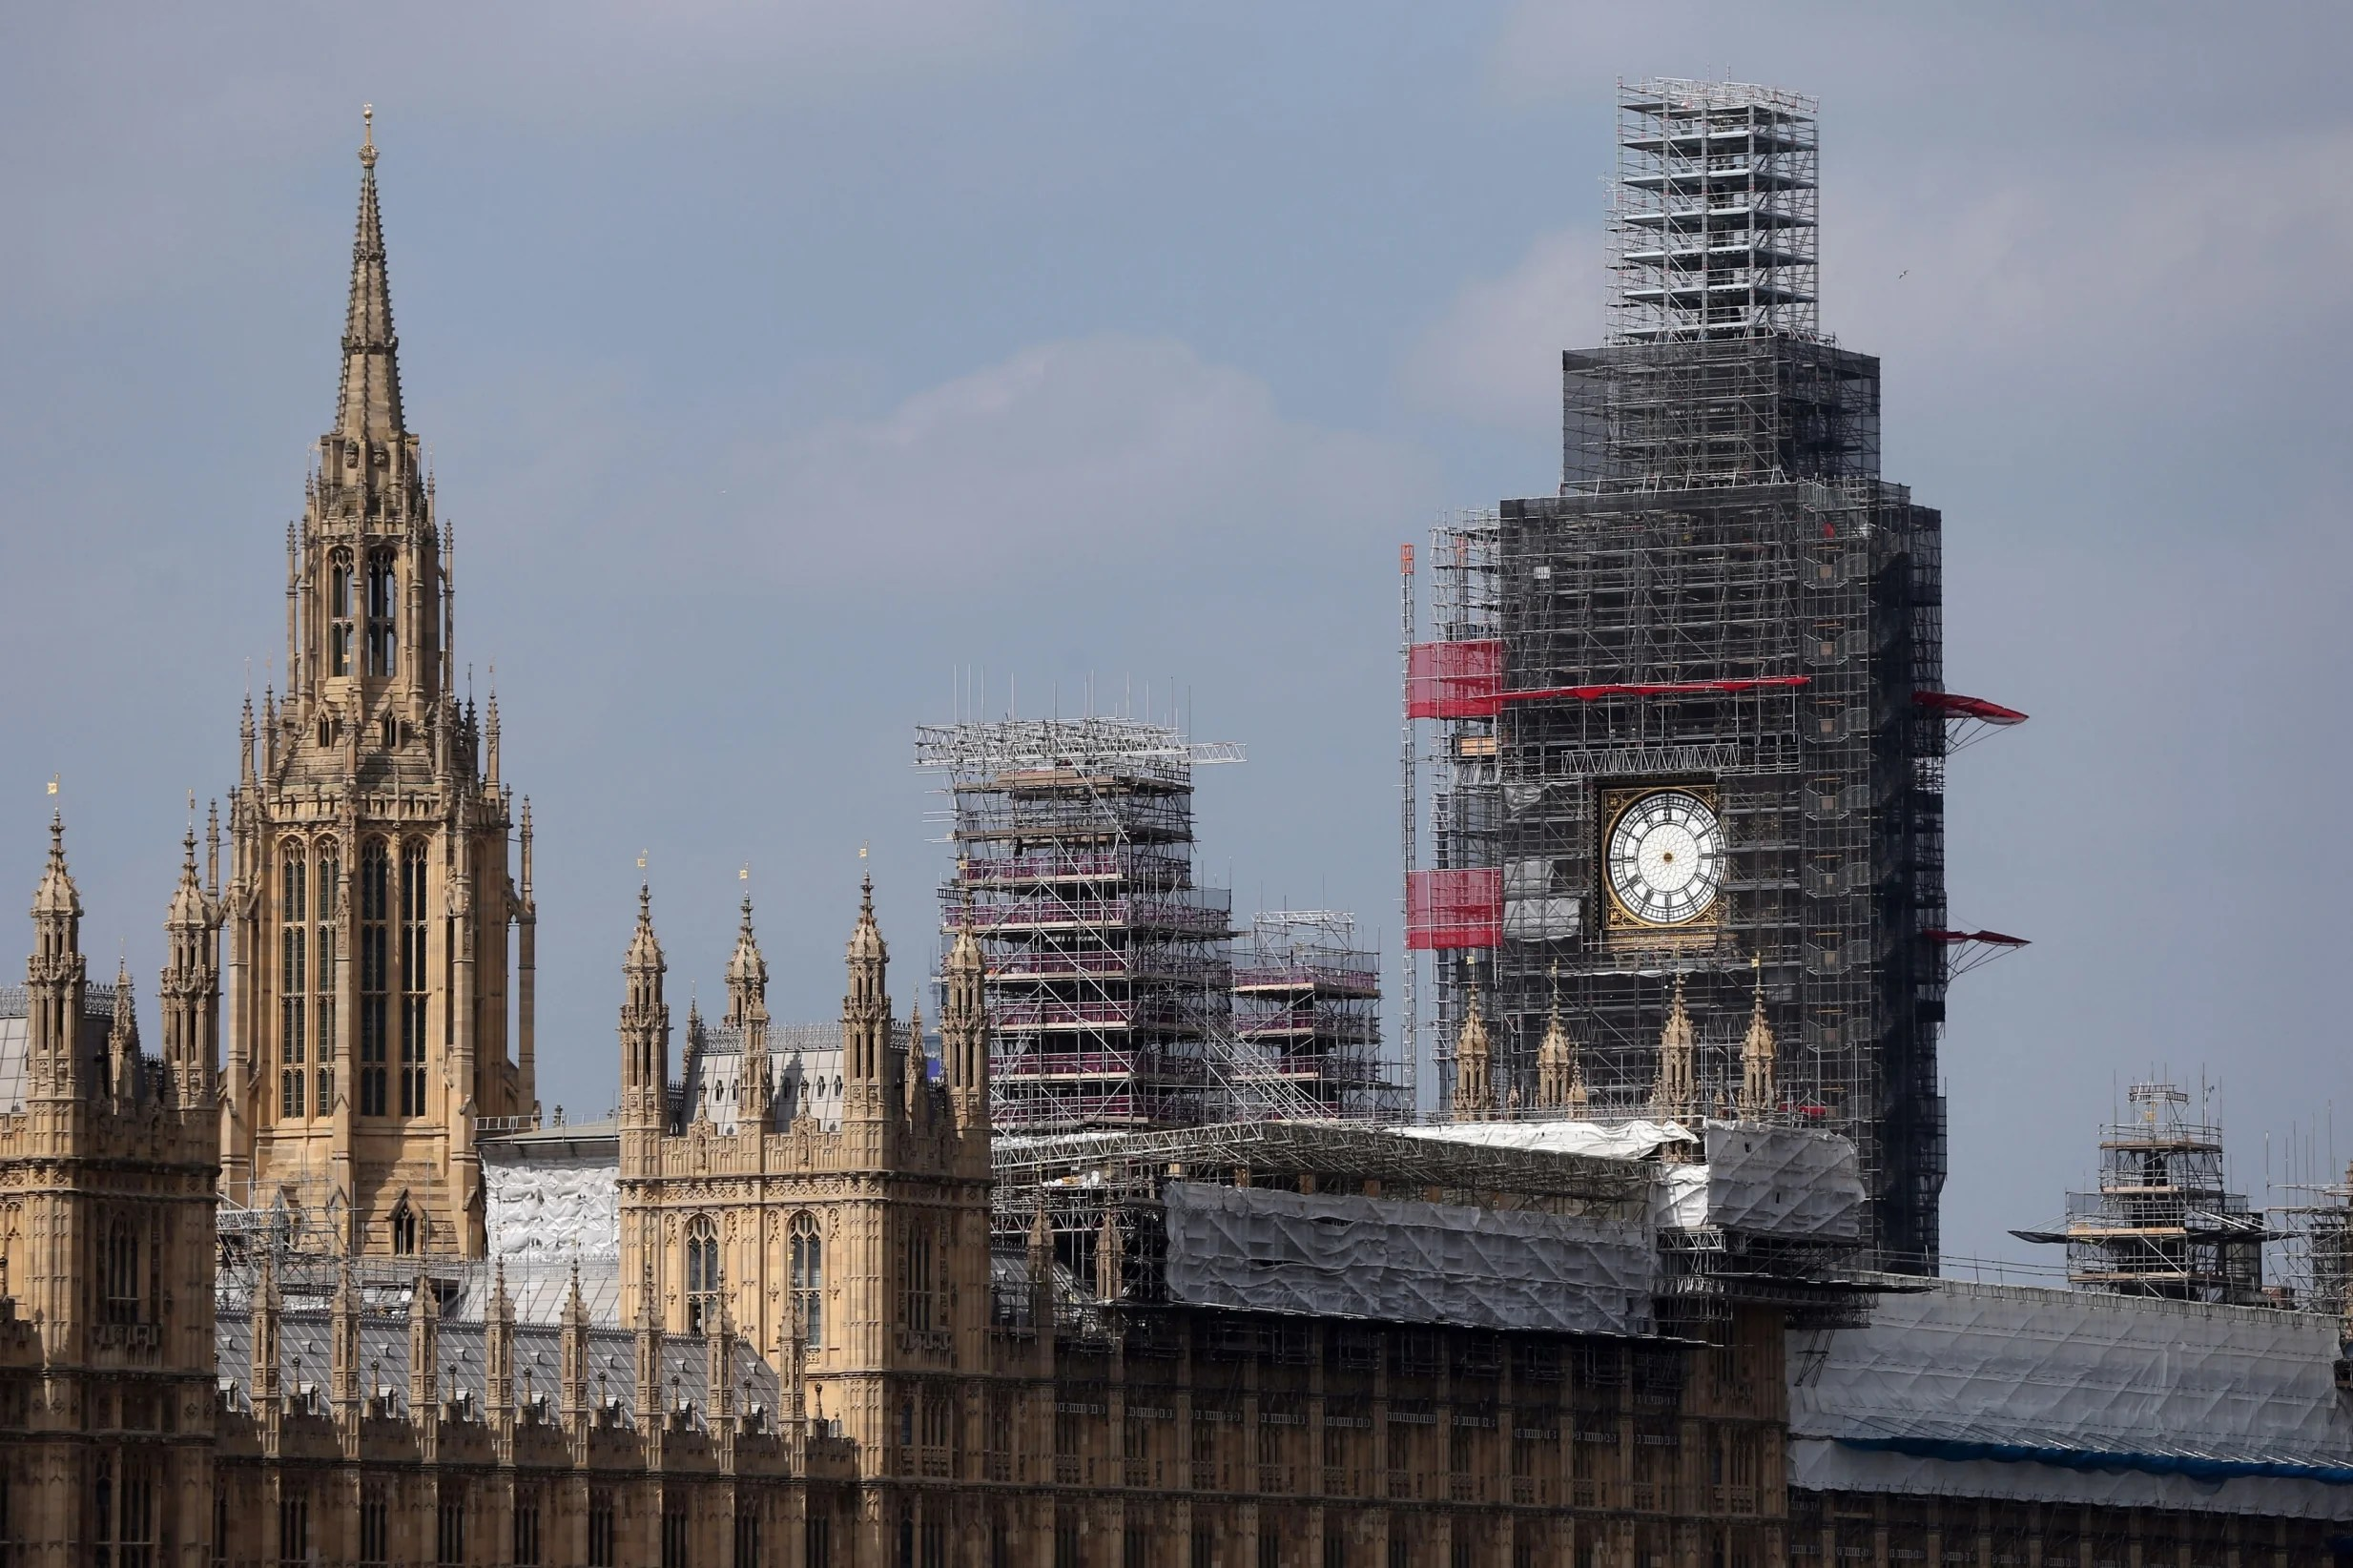 Man arrested after scaling Big Ben scaffolding in bid to break into Houses of Parliament